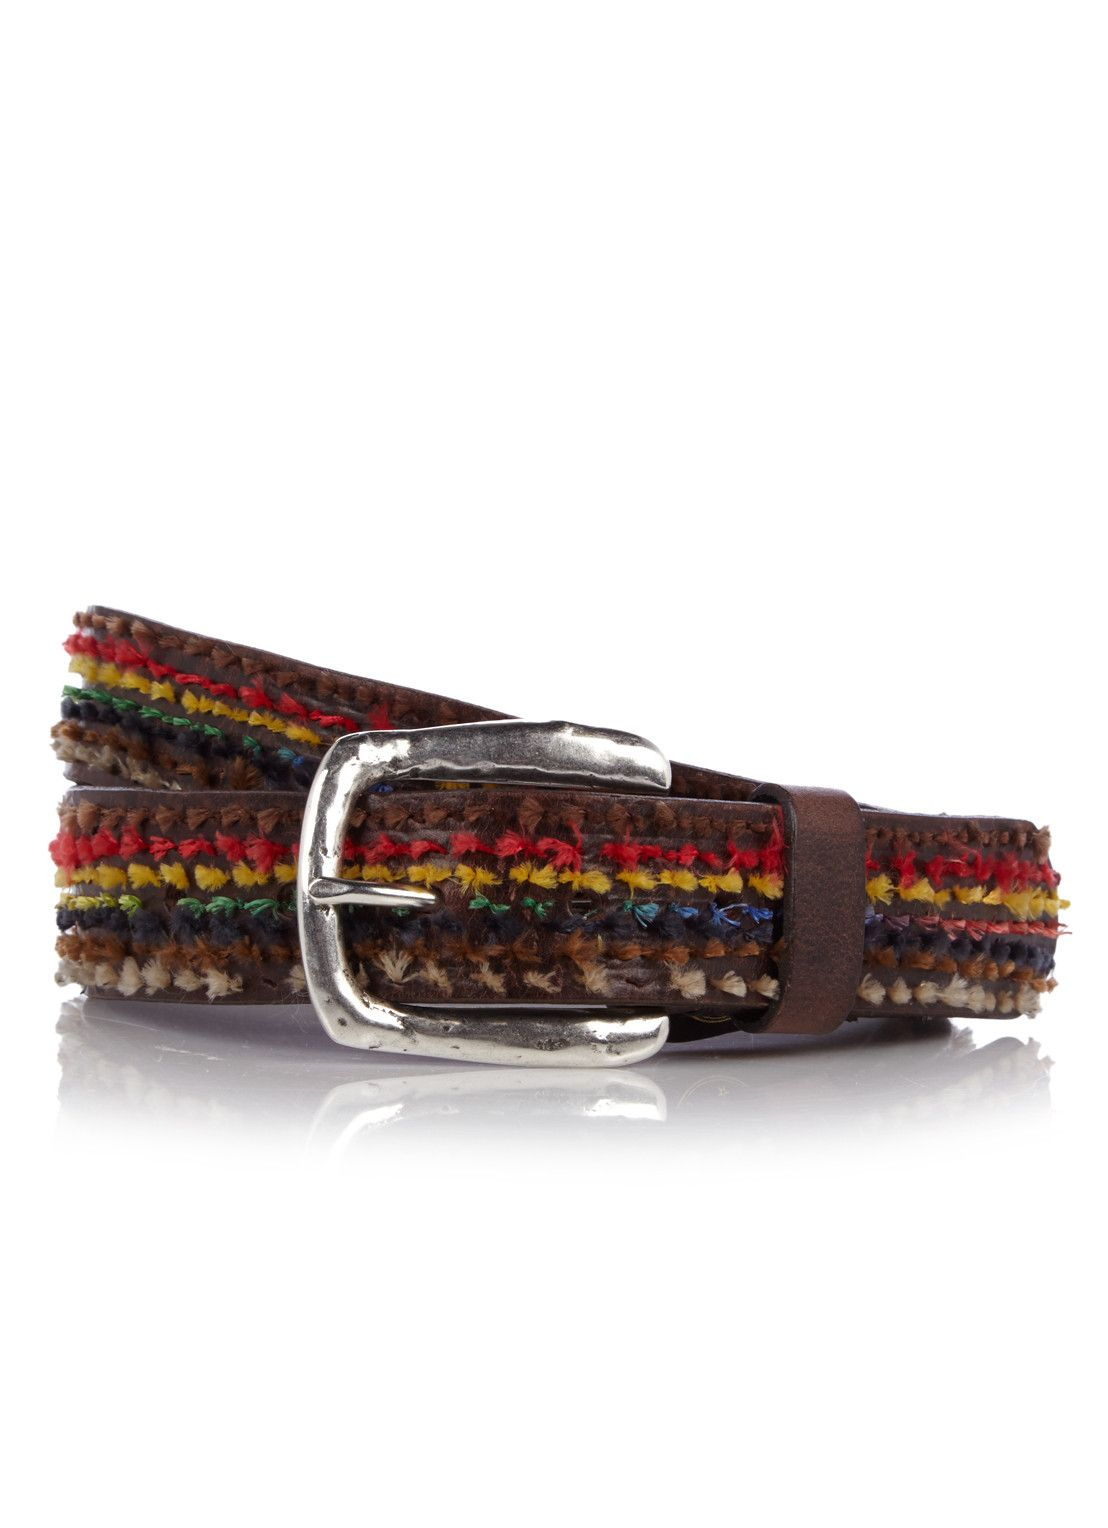 40a5be0b13d66 Profuomo belt. Belt made of vegetable tanned leather from Tuscany, Italy.  Finished with